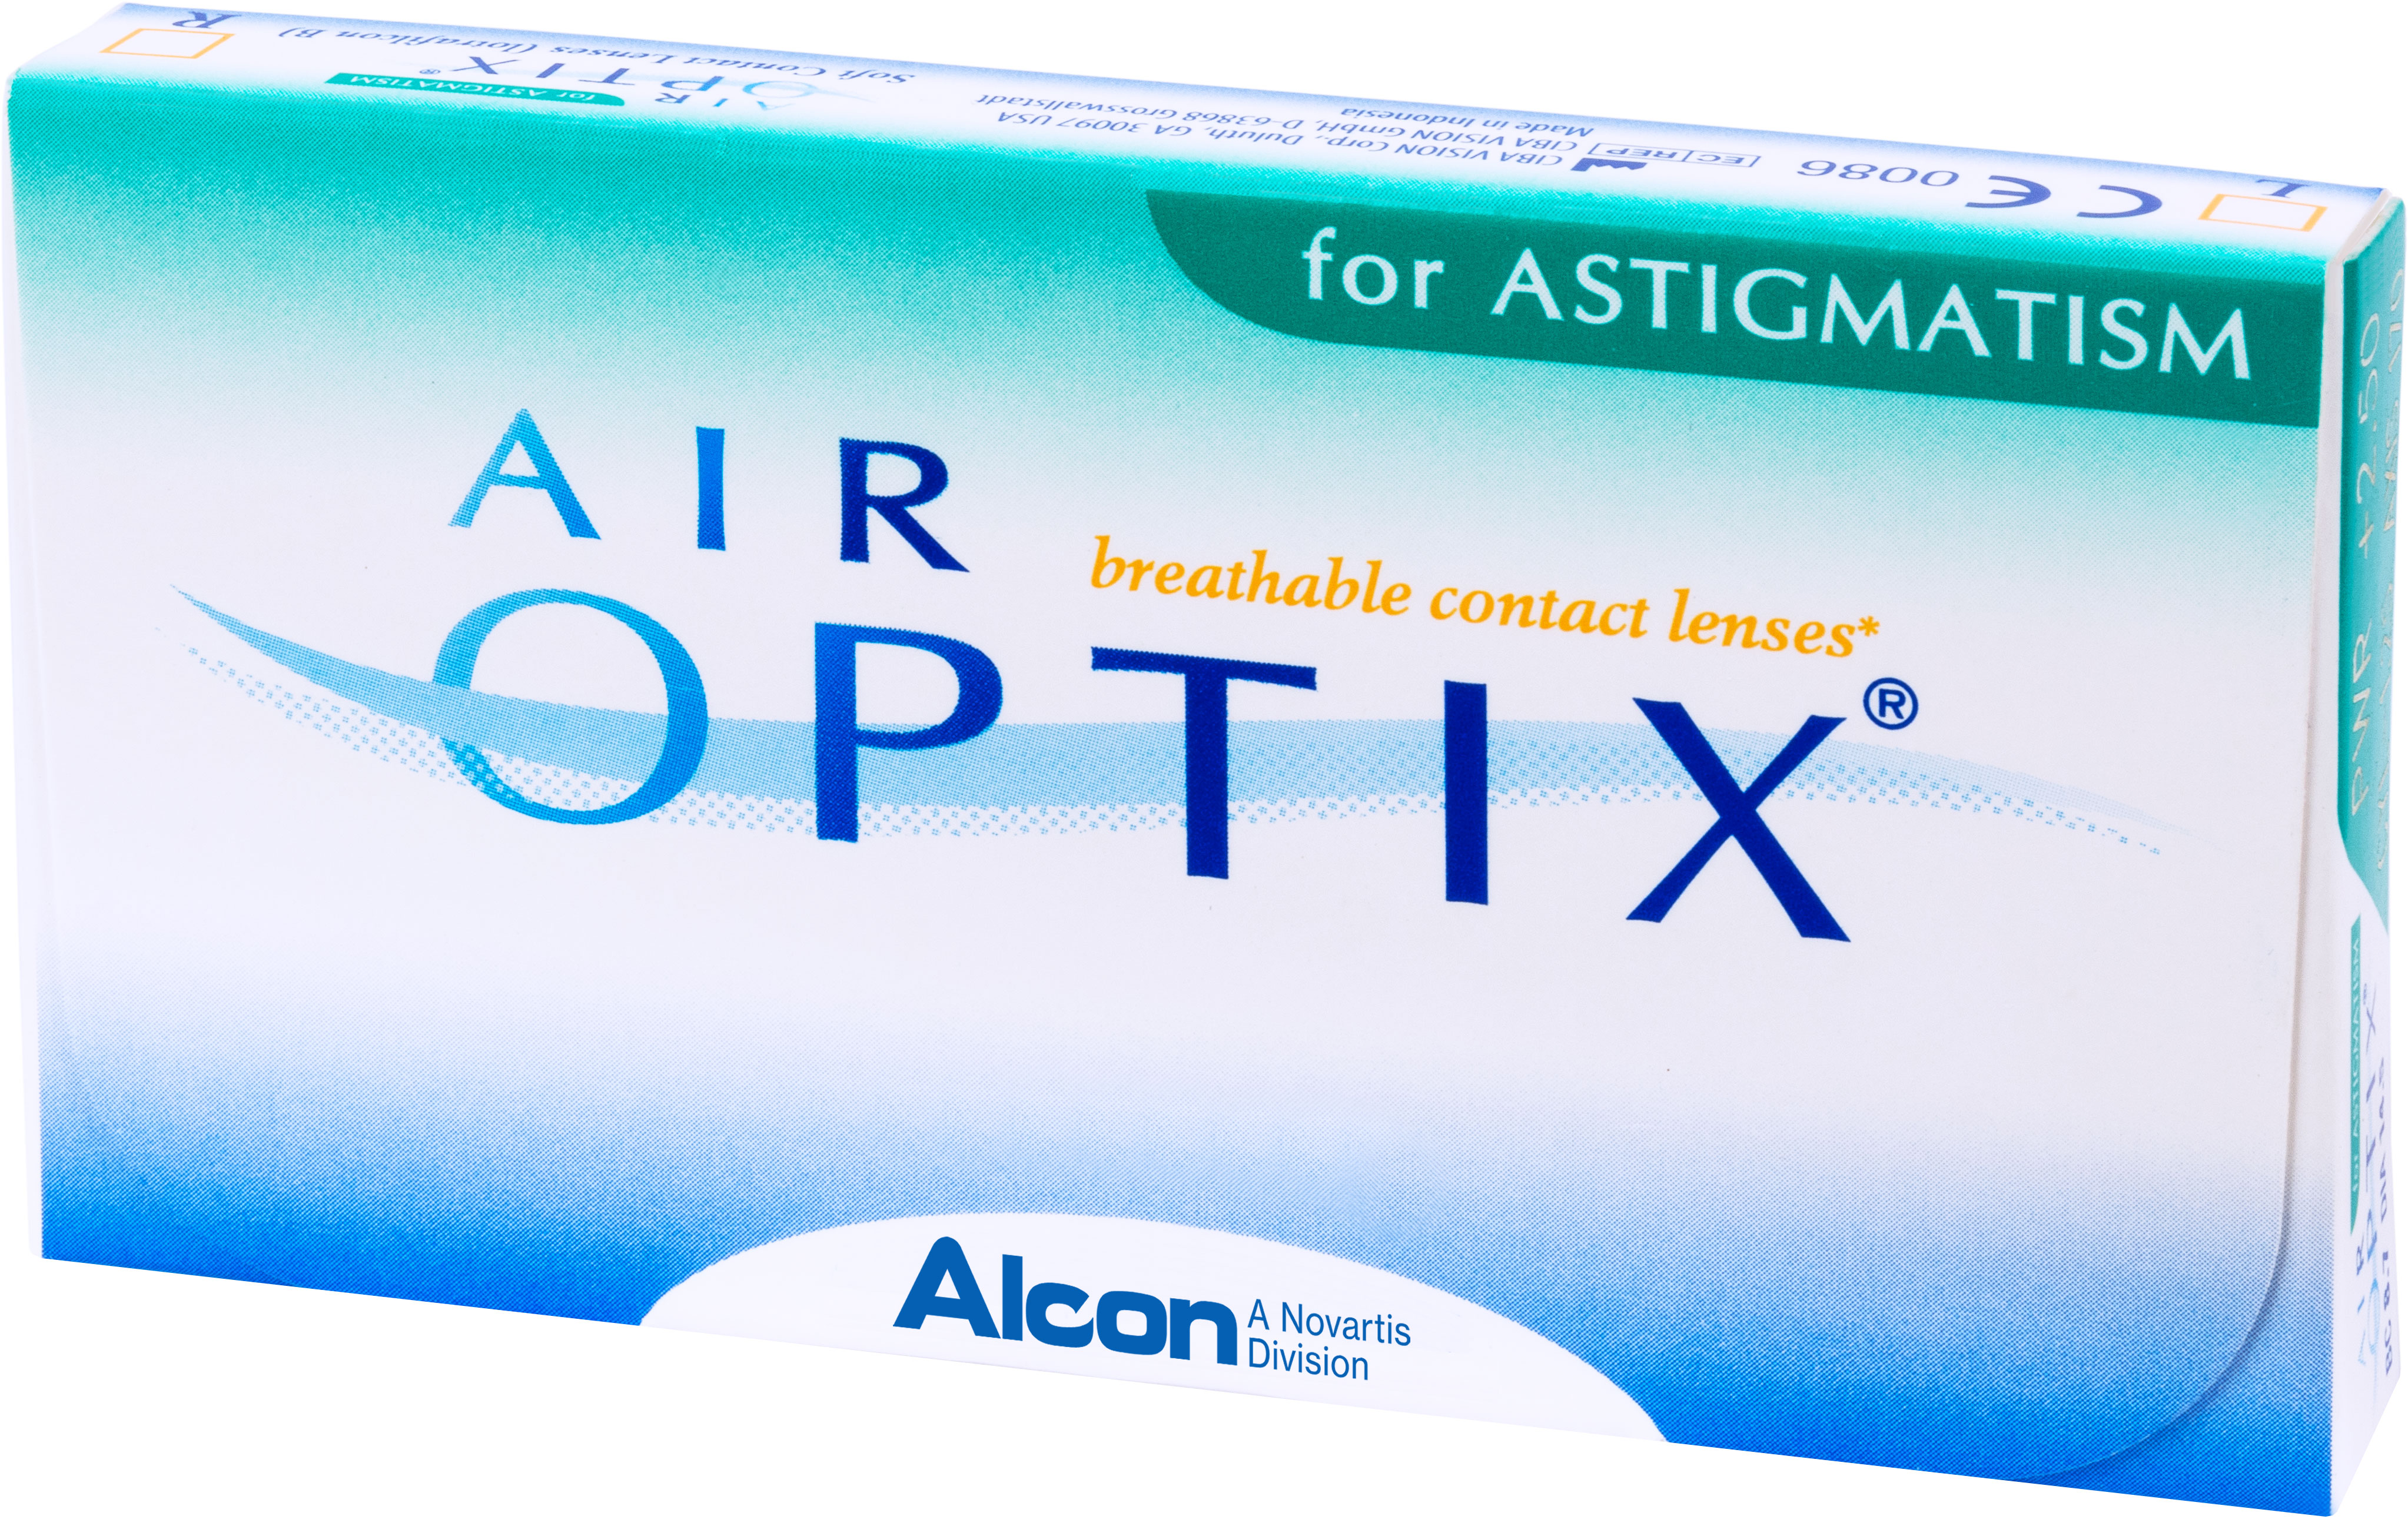 Аlcon контактные линзы Air Optix for Astigmatism 3pk /BC 8.7/DIA14.5/PWR +4.00/CYL -0.75/AXIS 40100000961with Hydraclear